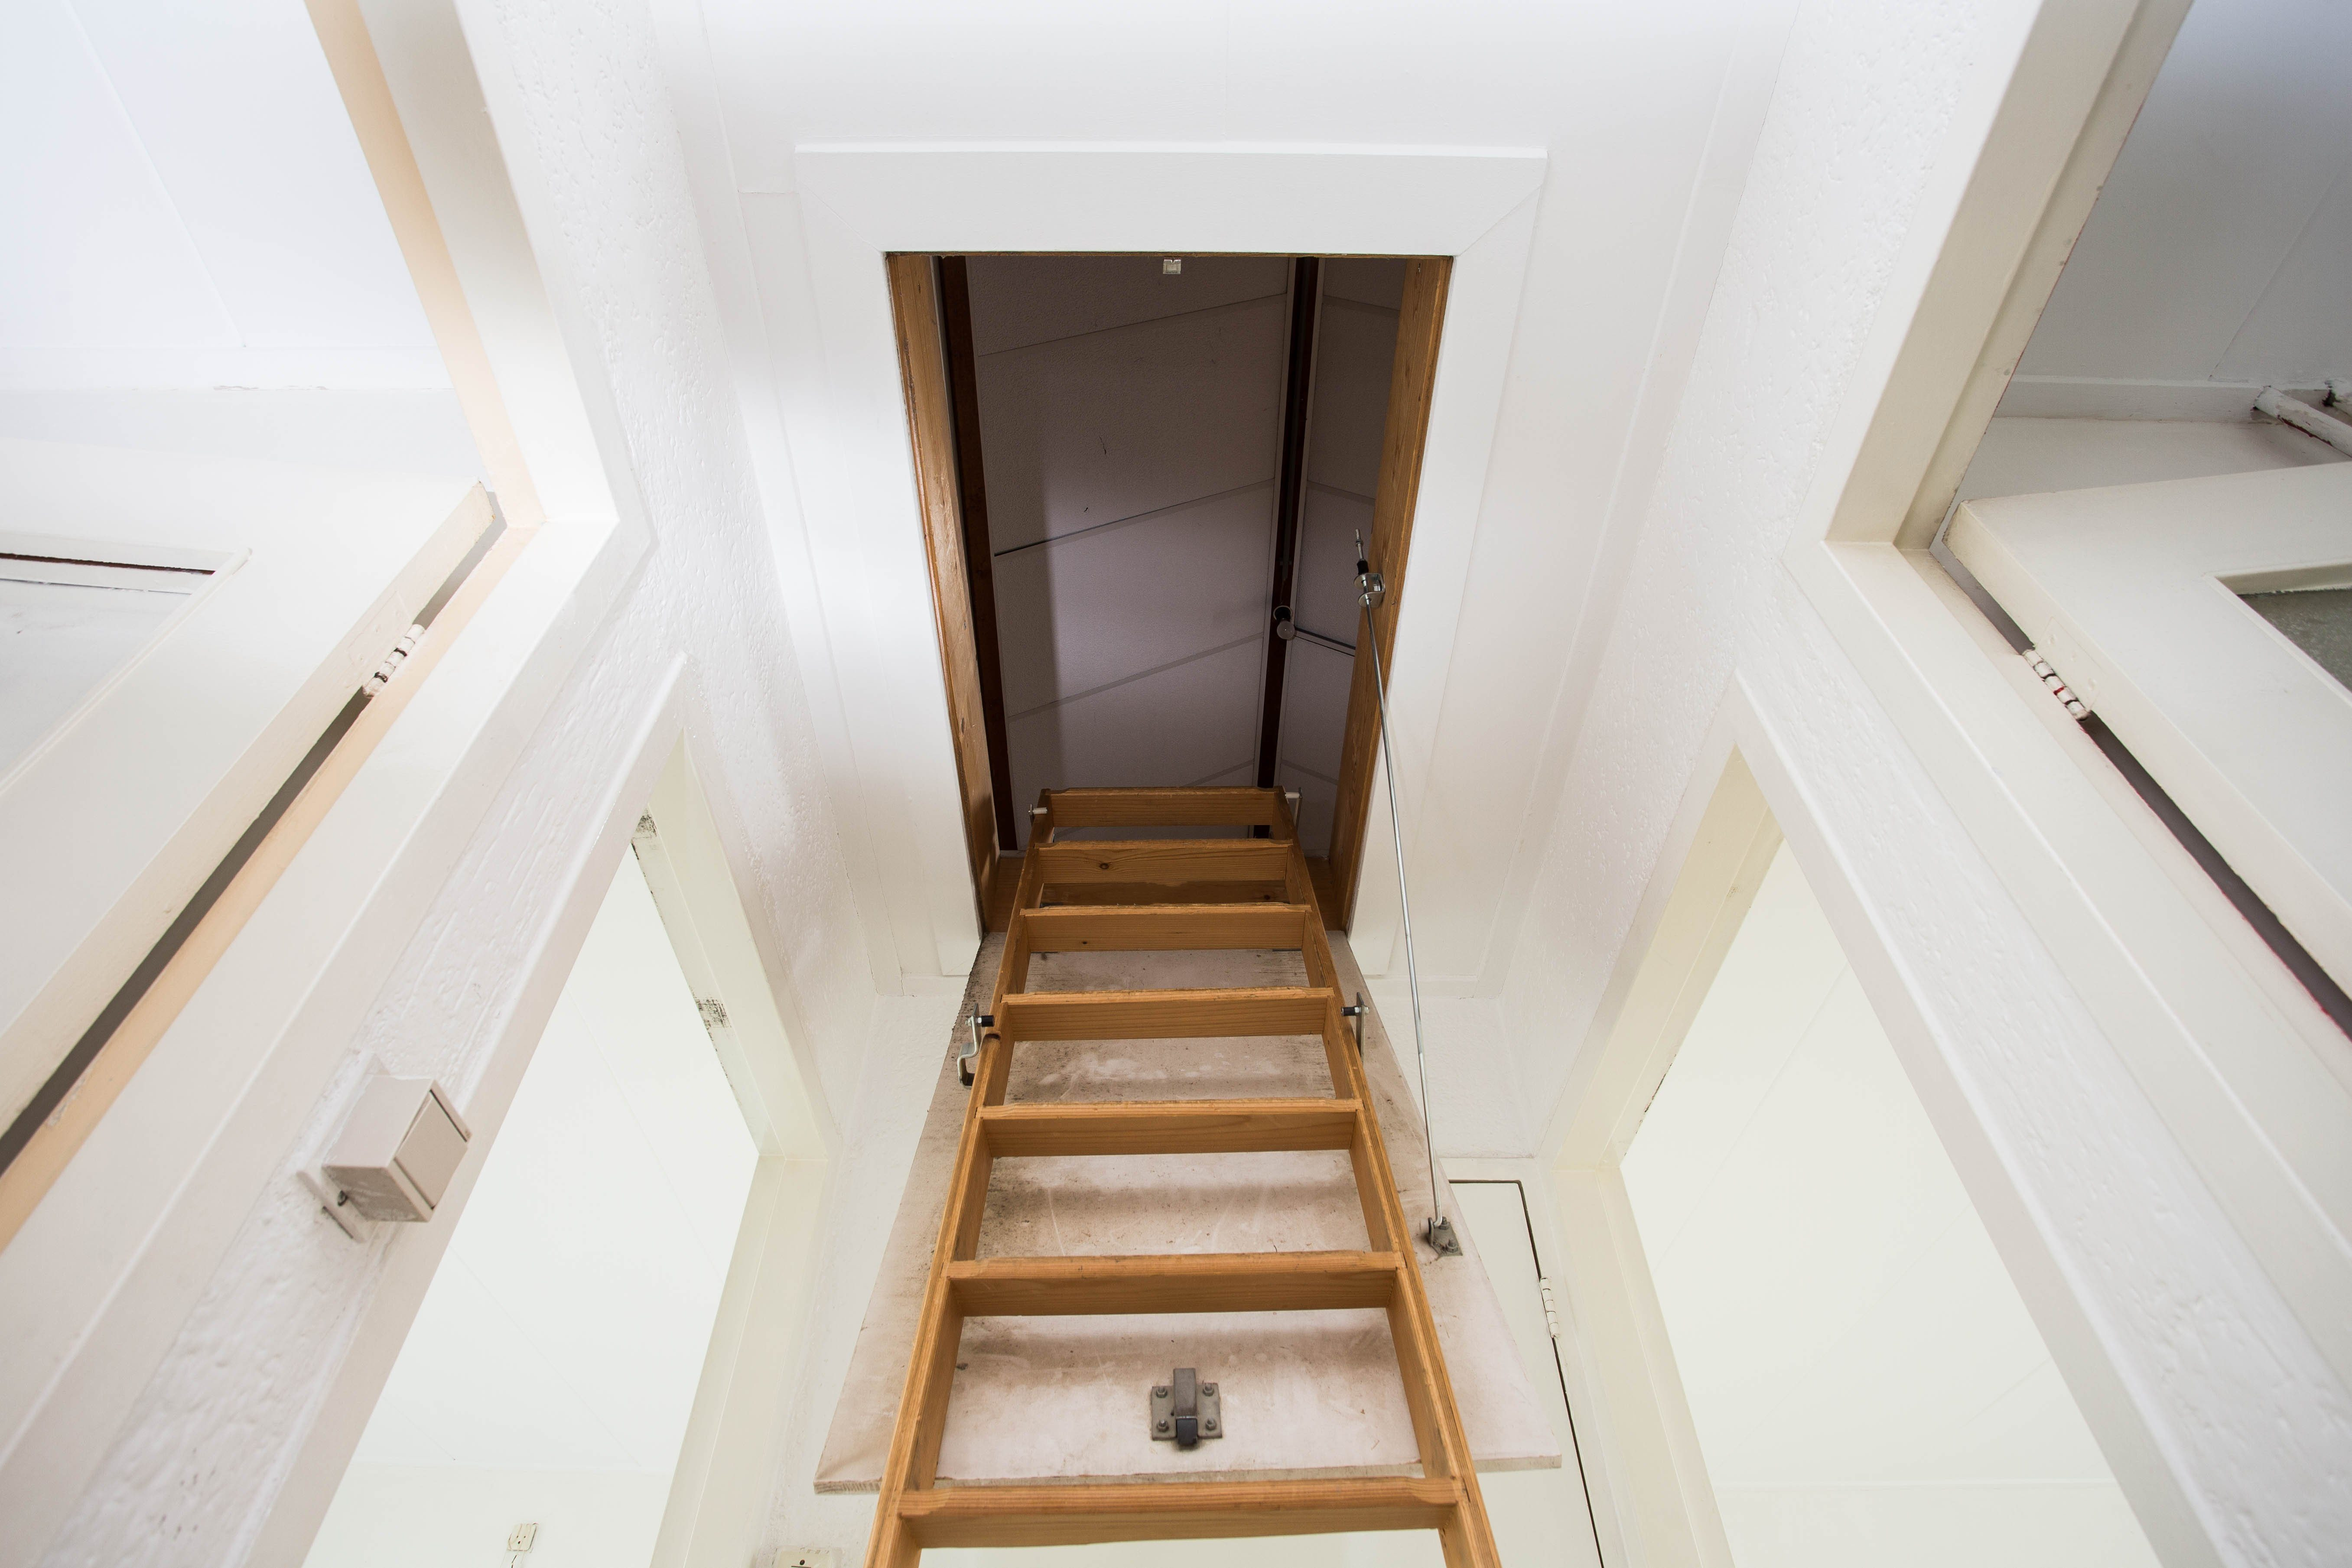 Wooden staircase to the attic in a modern house empty